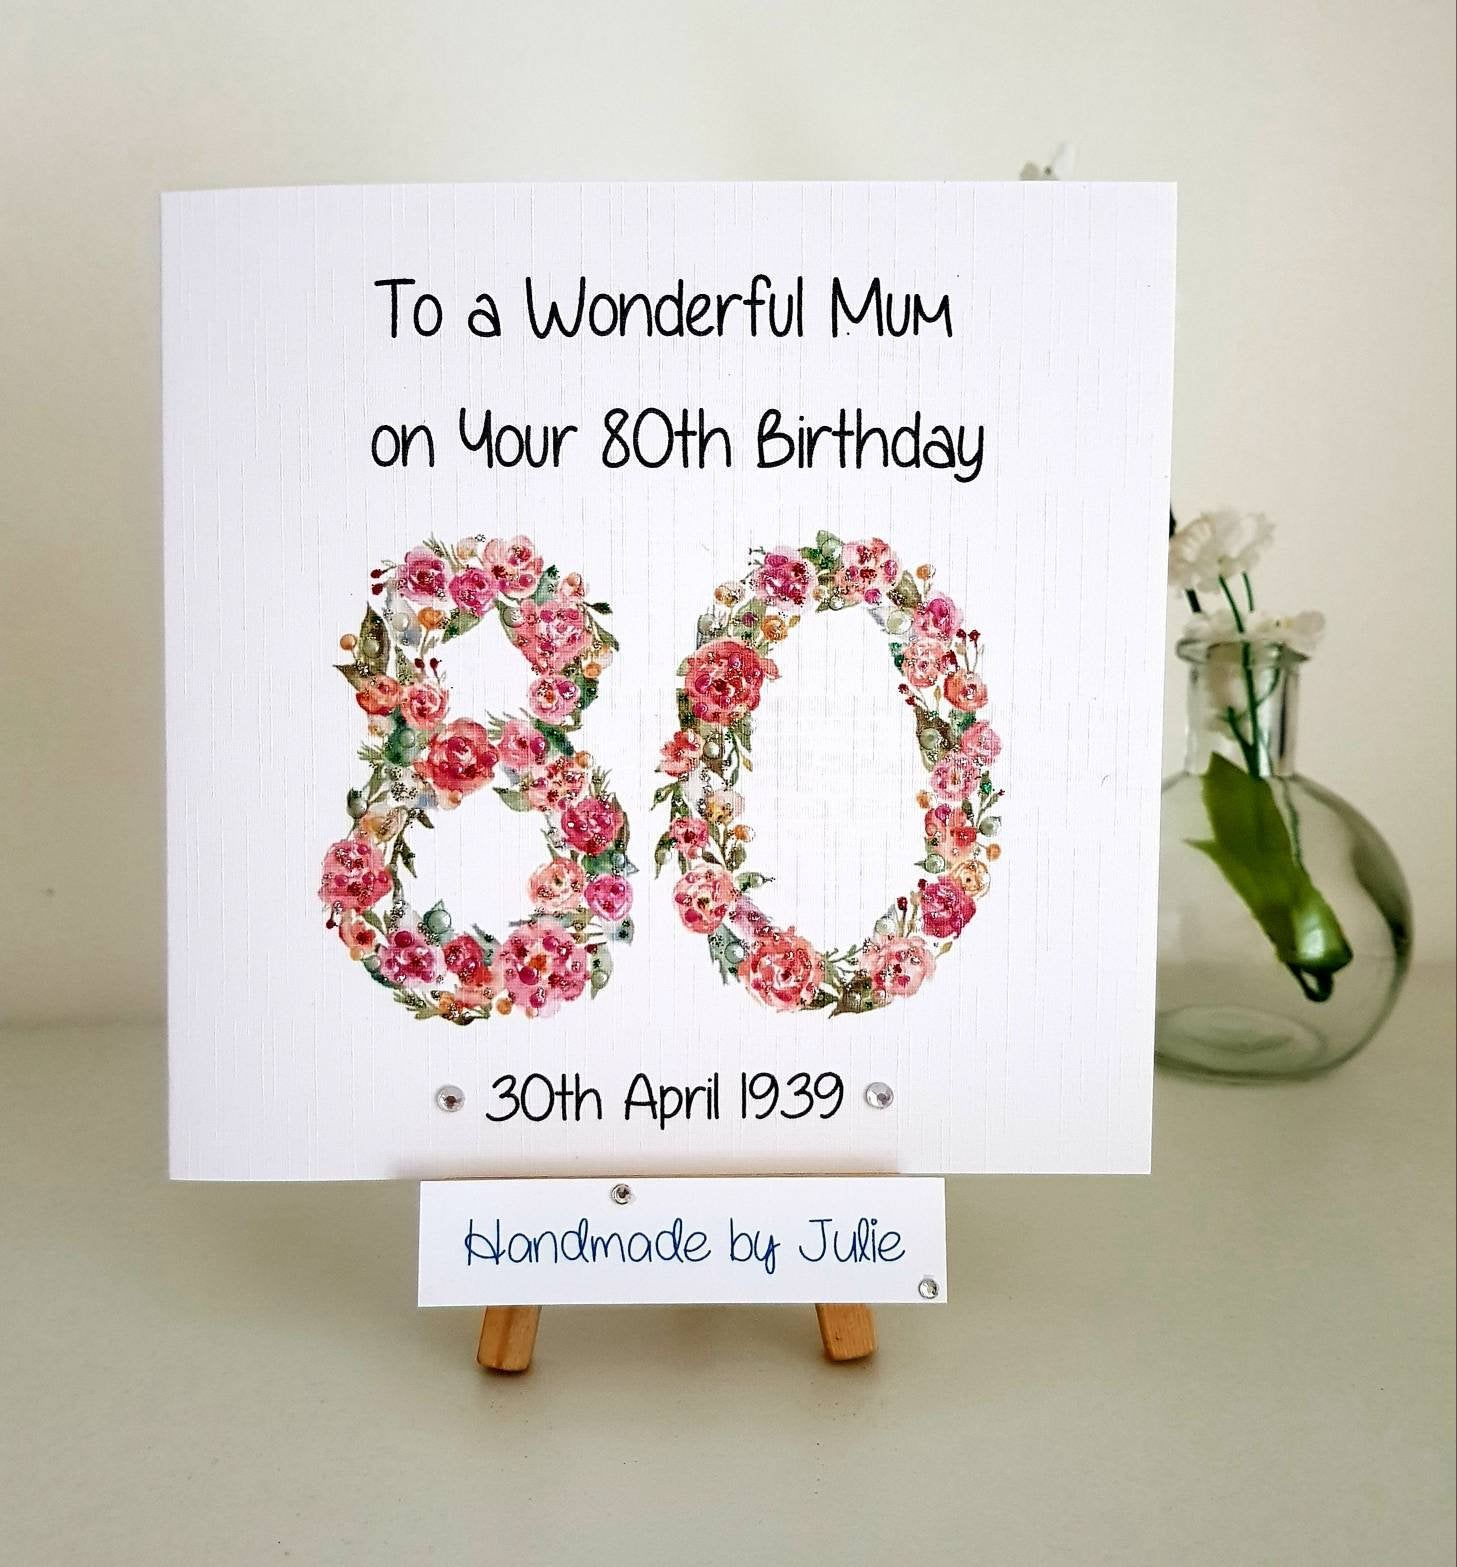 80th Birthday Card Handmade And Personalised For You Etsy 80th Birthday Cards Birthday Cards For Mum Handmade Birthday Cards